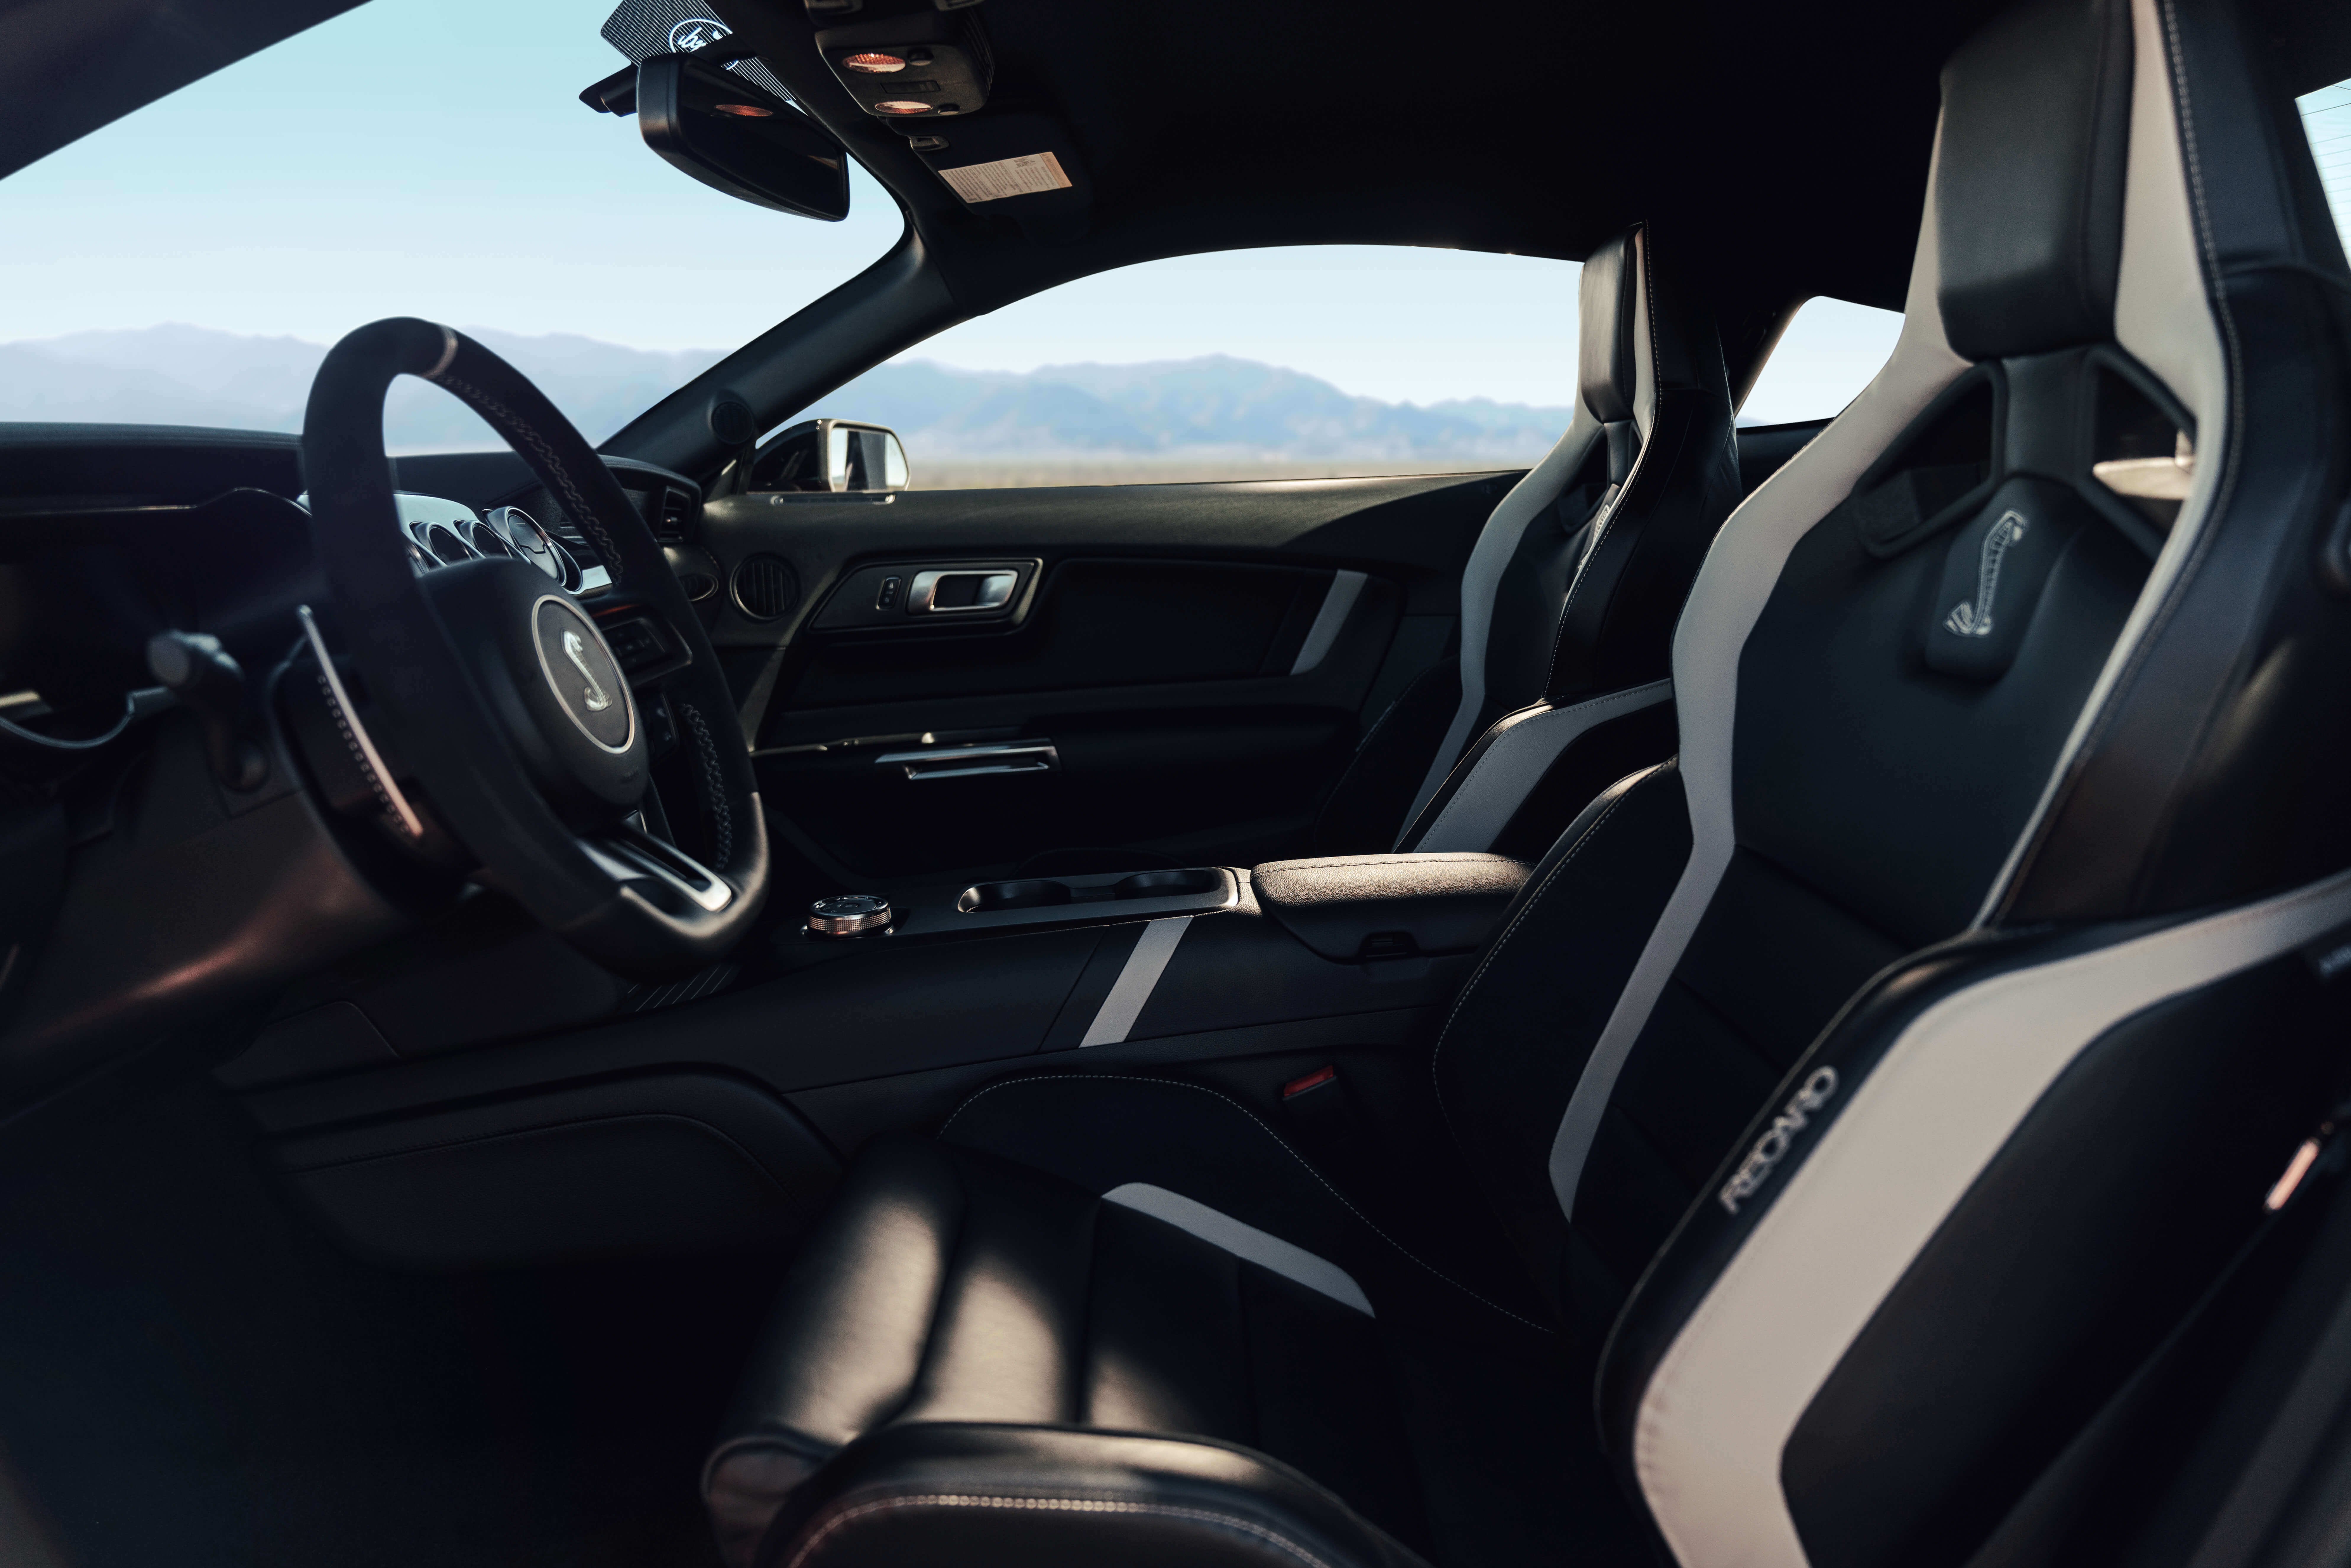 2020 shelby gt500 interior